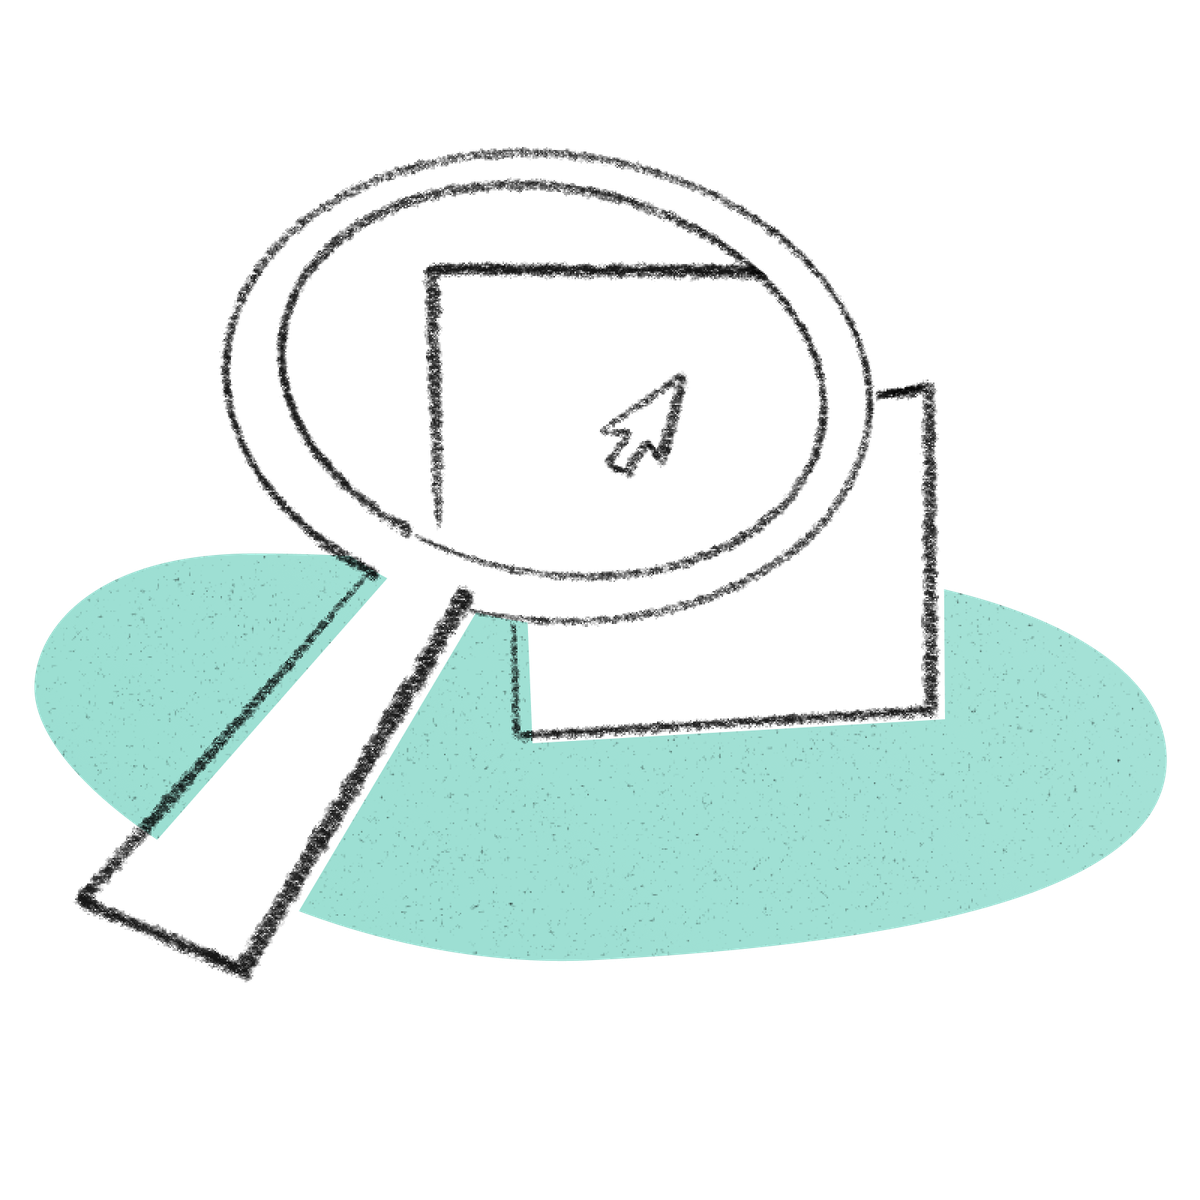 An illustration of a magnifying glass with a computer mouse pointer inside of it.